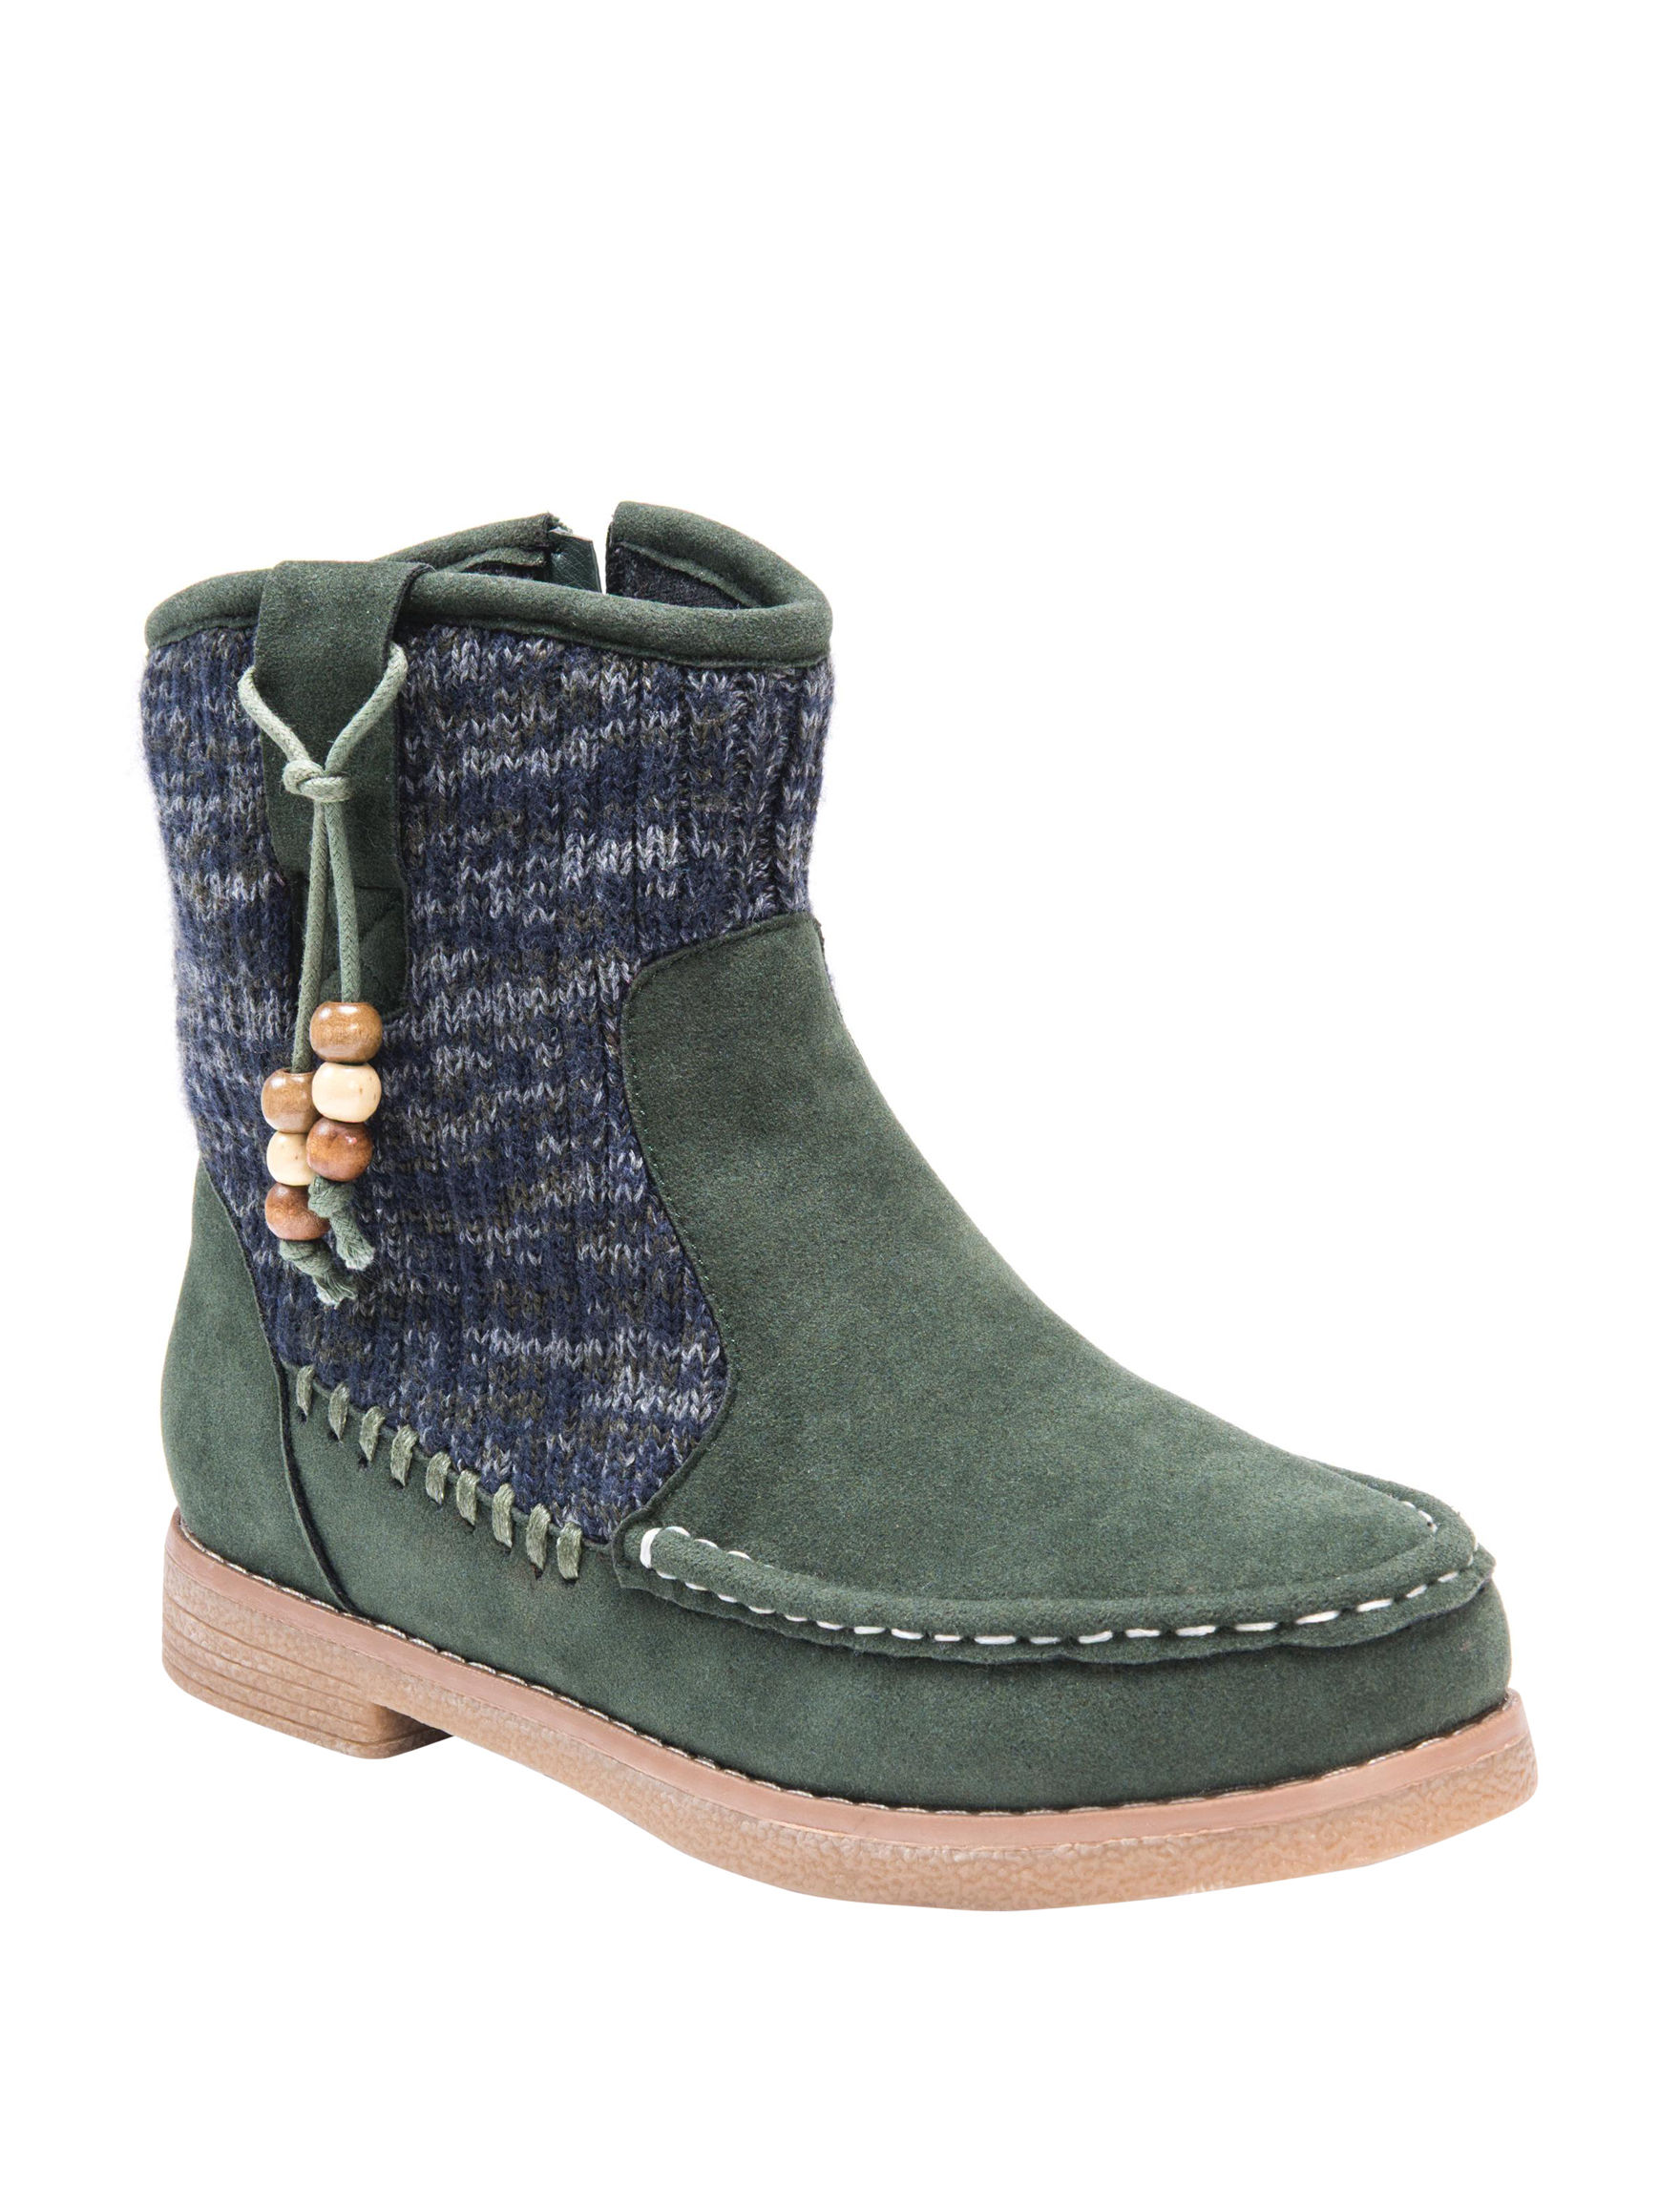 Muk Luks Army Green Winter Boots